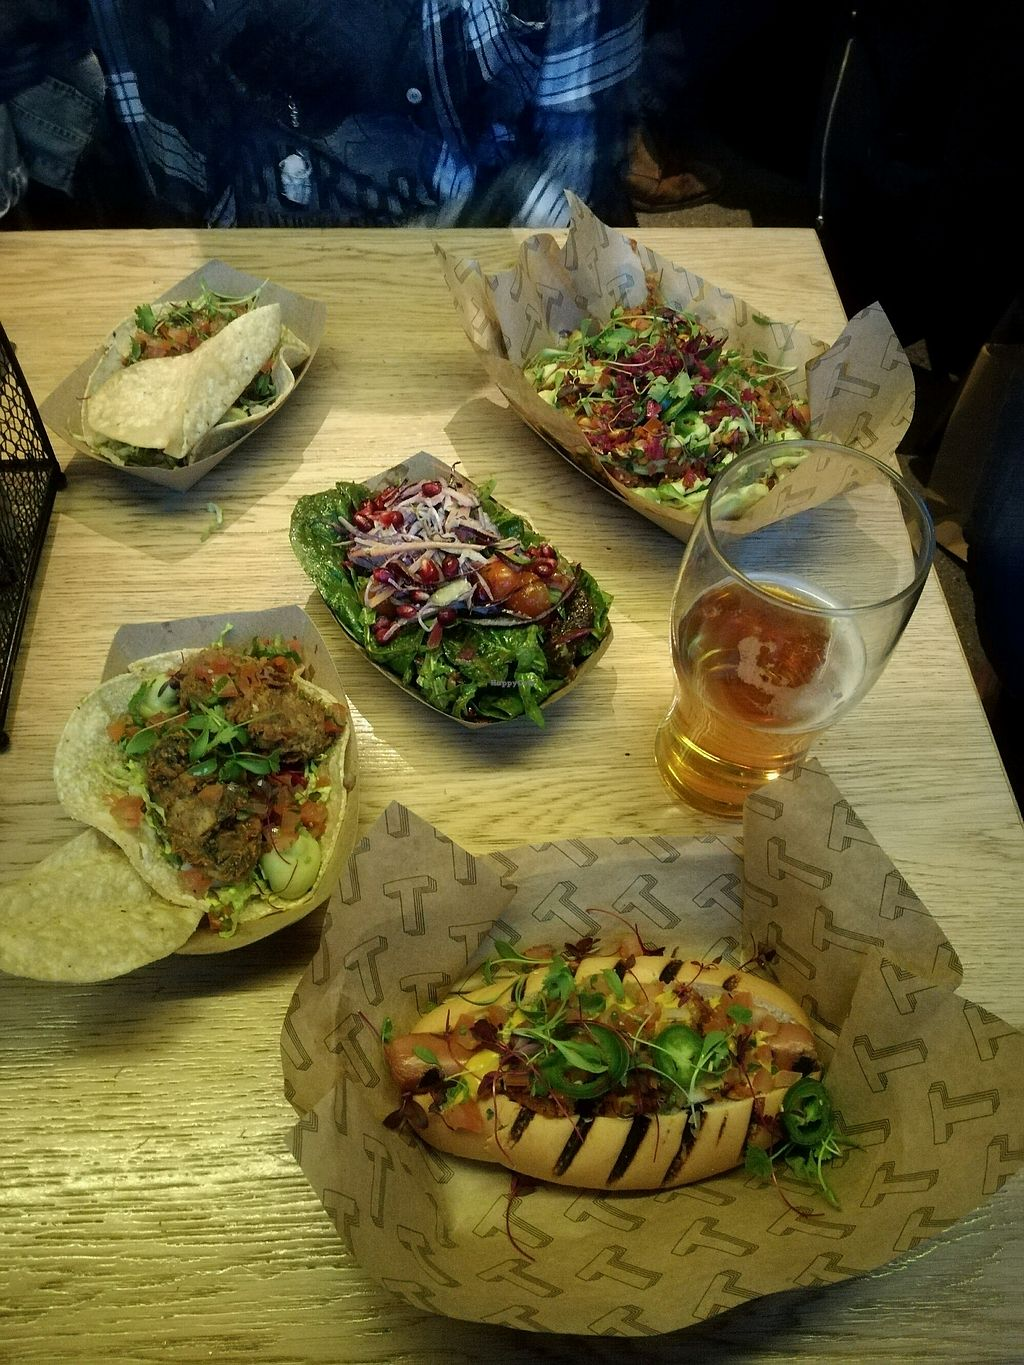 """Photo of Token  by <a href=""""/members/profile/IirisAura"""">IirisAura</a> <br/>hotdog, salad, chilli fries, tacos <br/> April 6, 2018  - <a href='/contact/abuse/image/96579/381644'>Report</a>"""